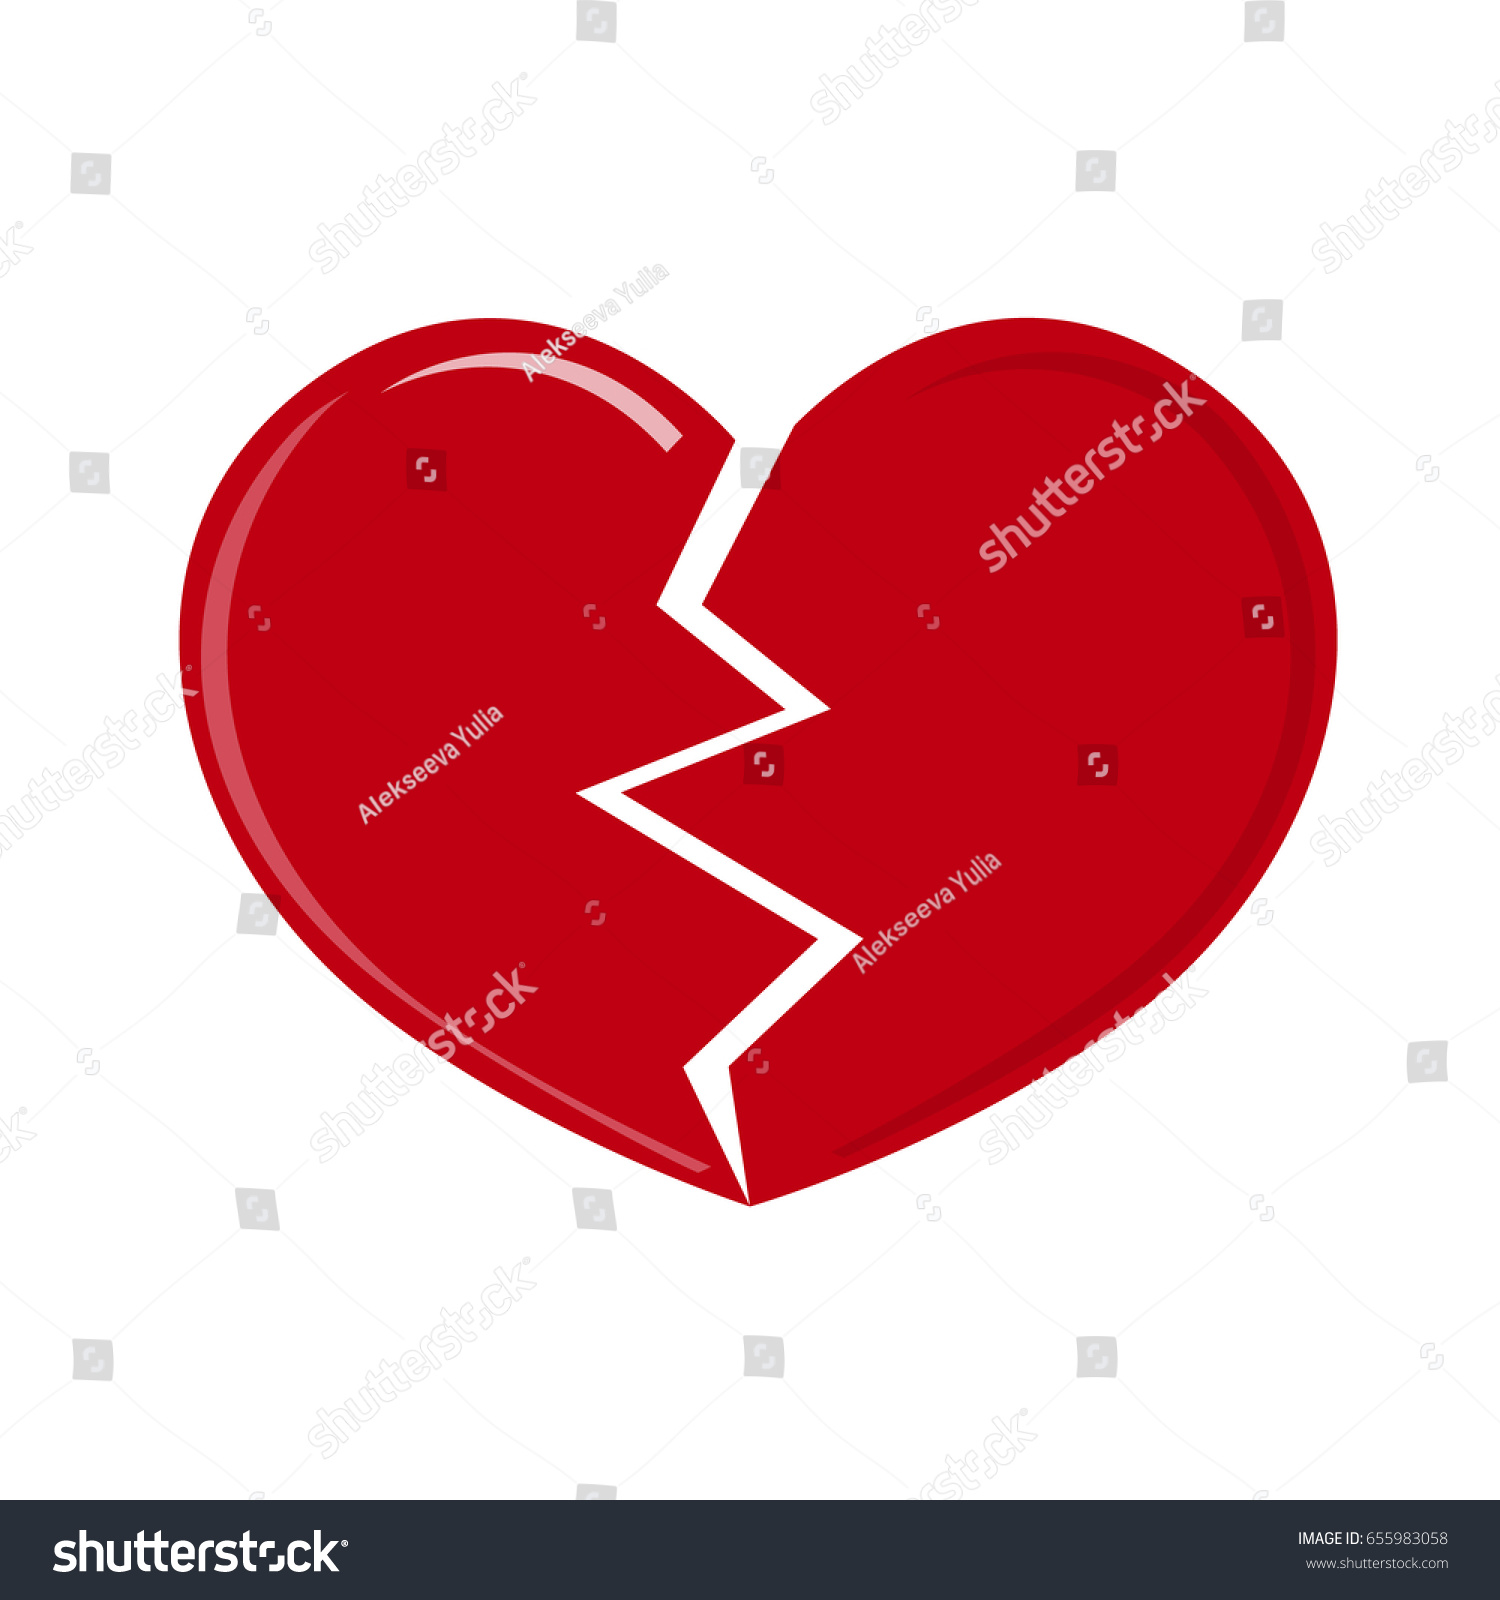 Red Heartbreak Broken Heart Isolated On A White Background Vector